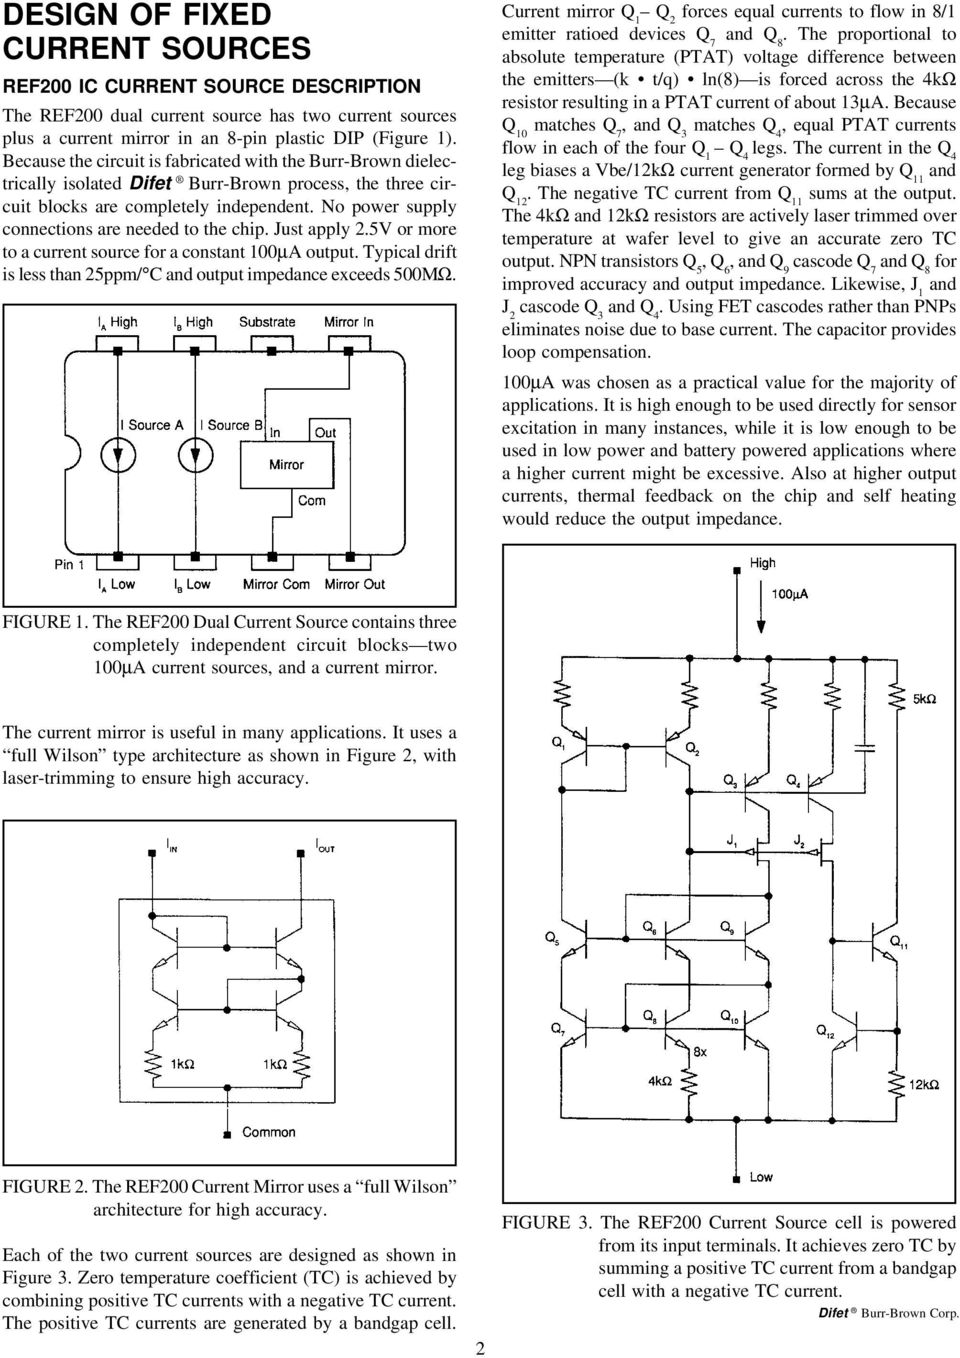 Design Of Fixed Current Sources Pdf Integrator Lifier Circuit Likewise Low Drift No Power Supply Connections Are Needed To The Chip Just Apply 25v Or More